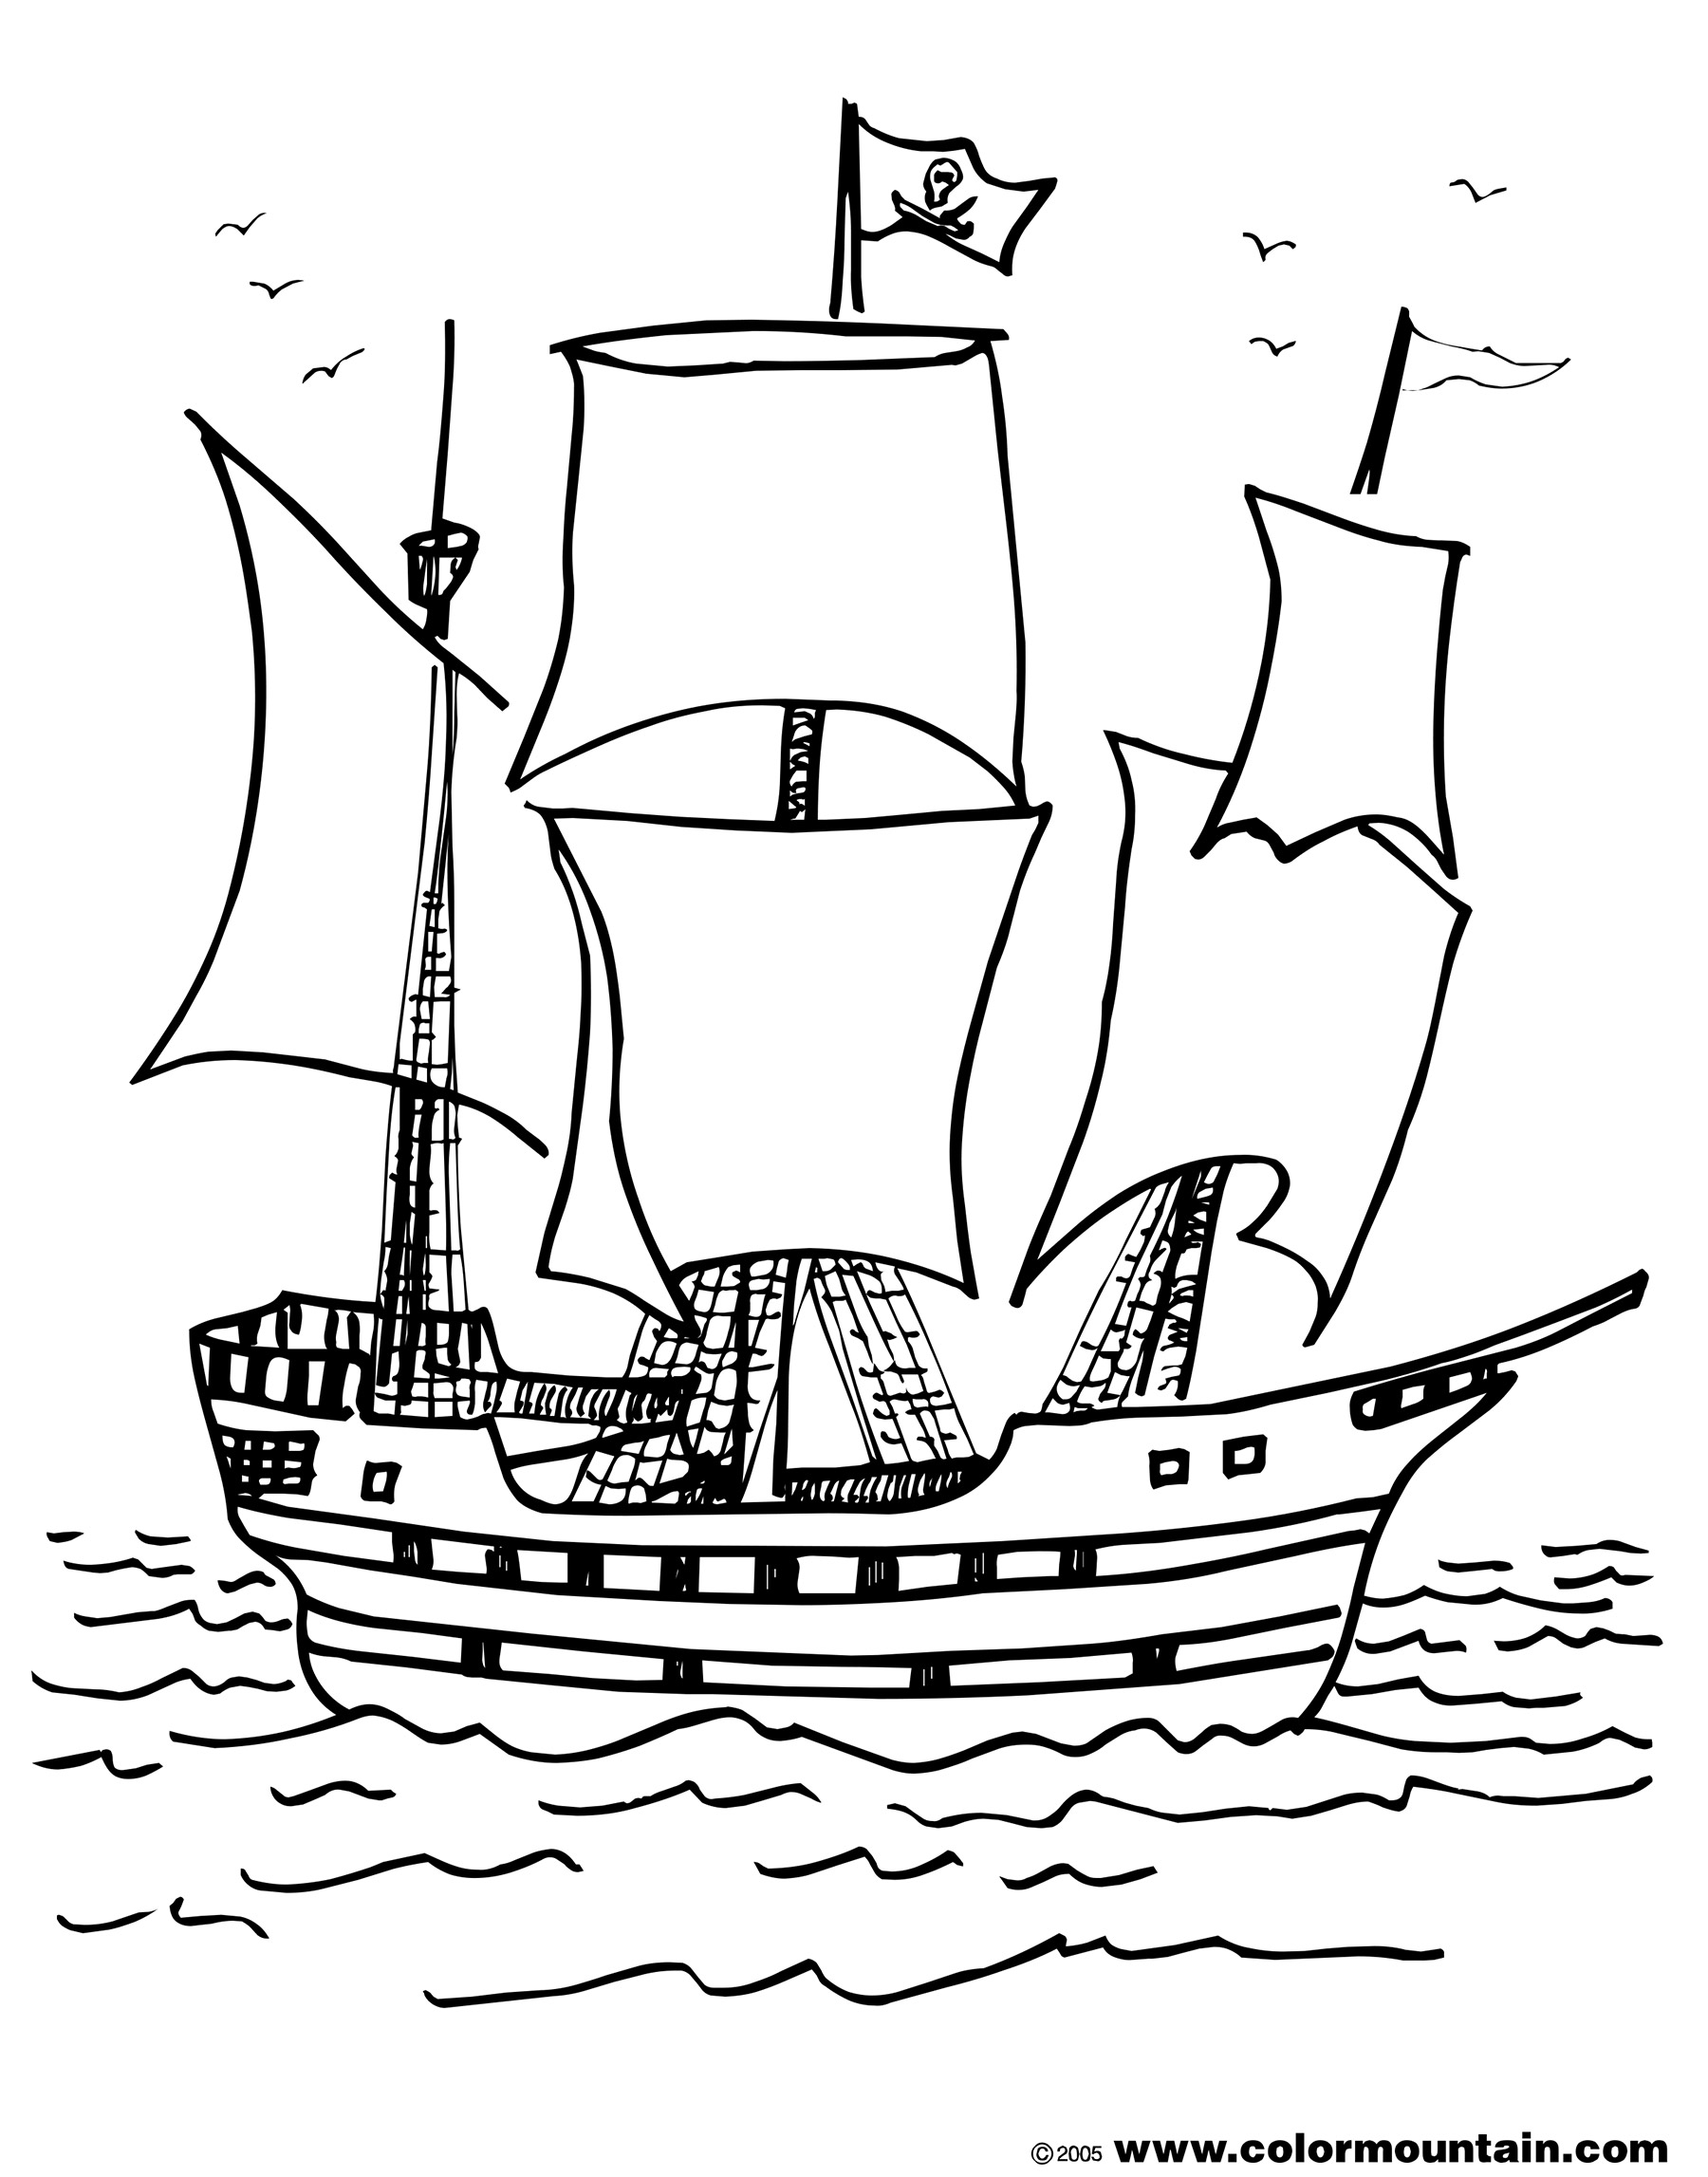 ship coloring book ship coloring pages coloring pages to download and print book coloring ship